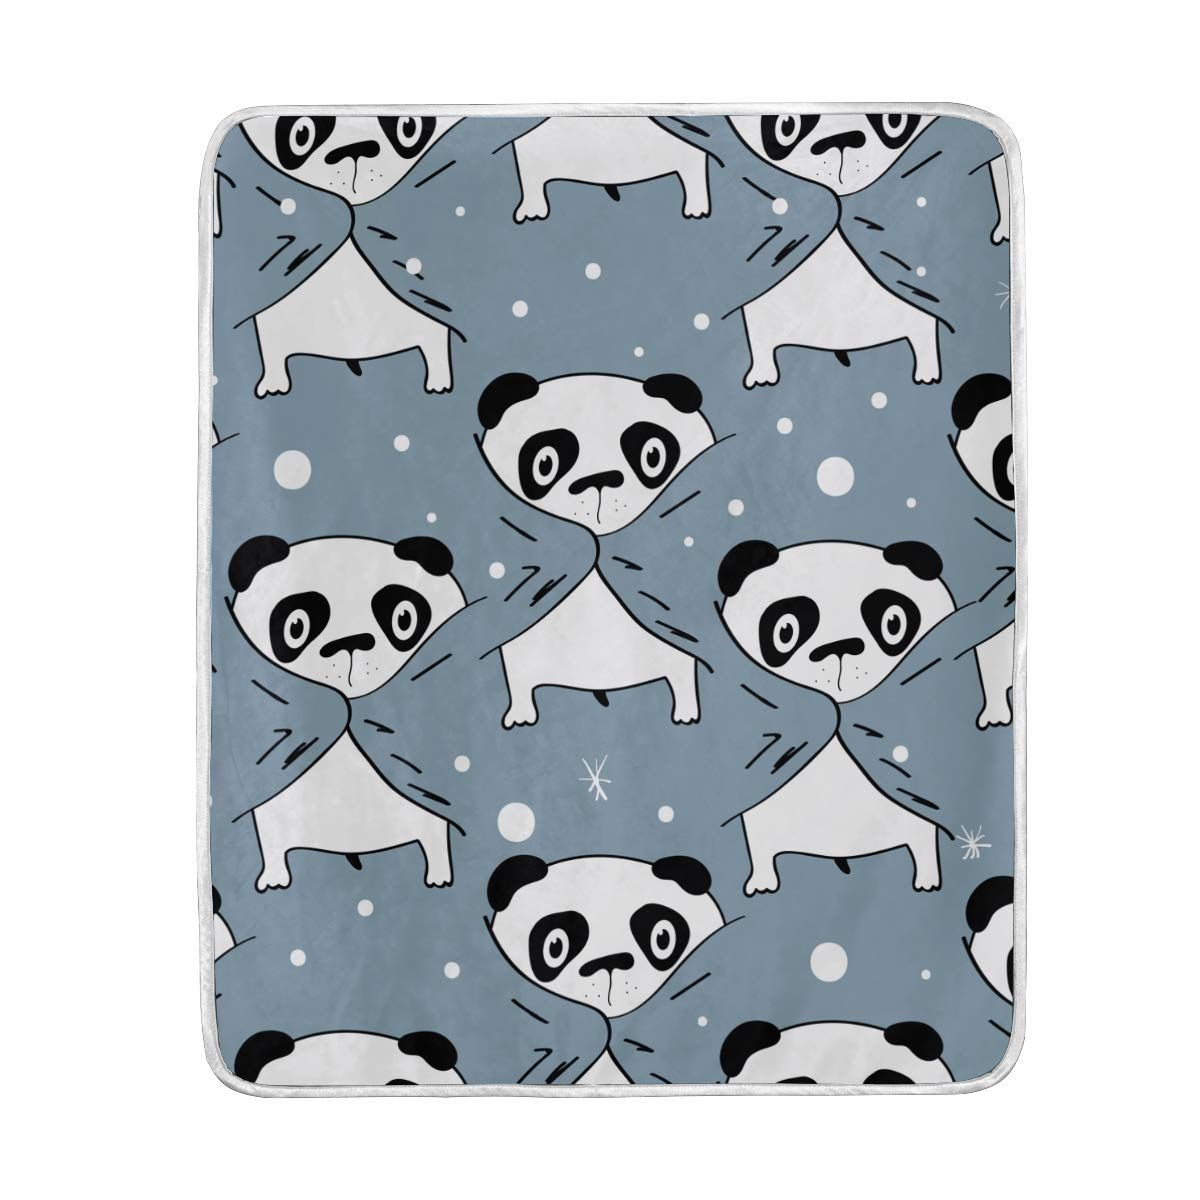 ALAZA Seasonal Quilt Cartoon Funny Panda Crystal Velvet Throw Blanket for Bed 50 x 60 inch Kids Baby Girls Colorful Painting Couch Blanket Throw Decor